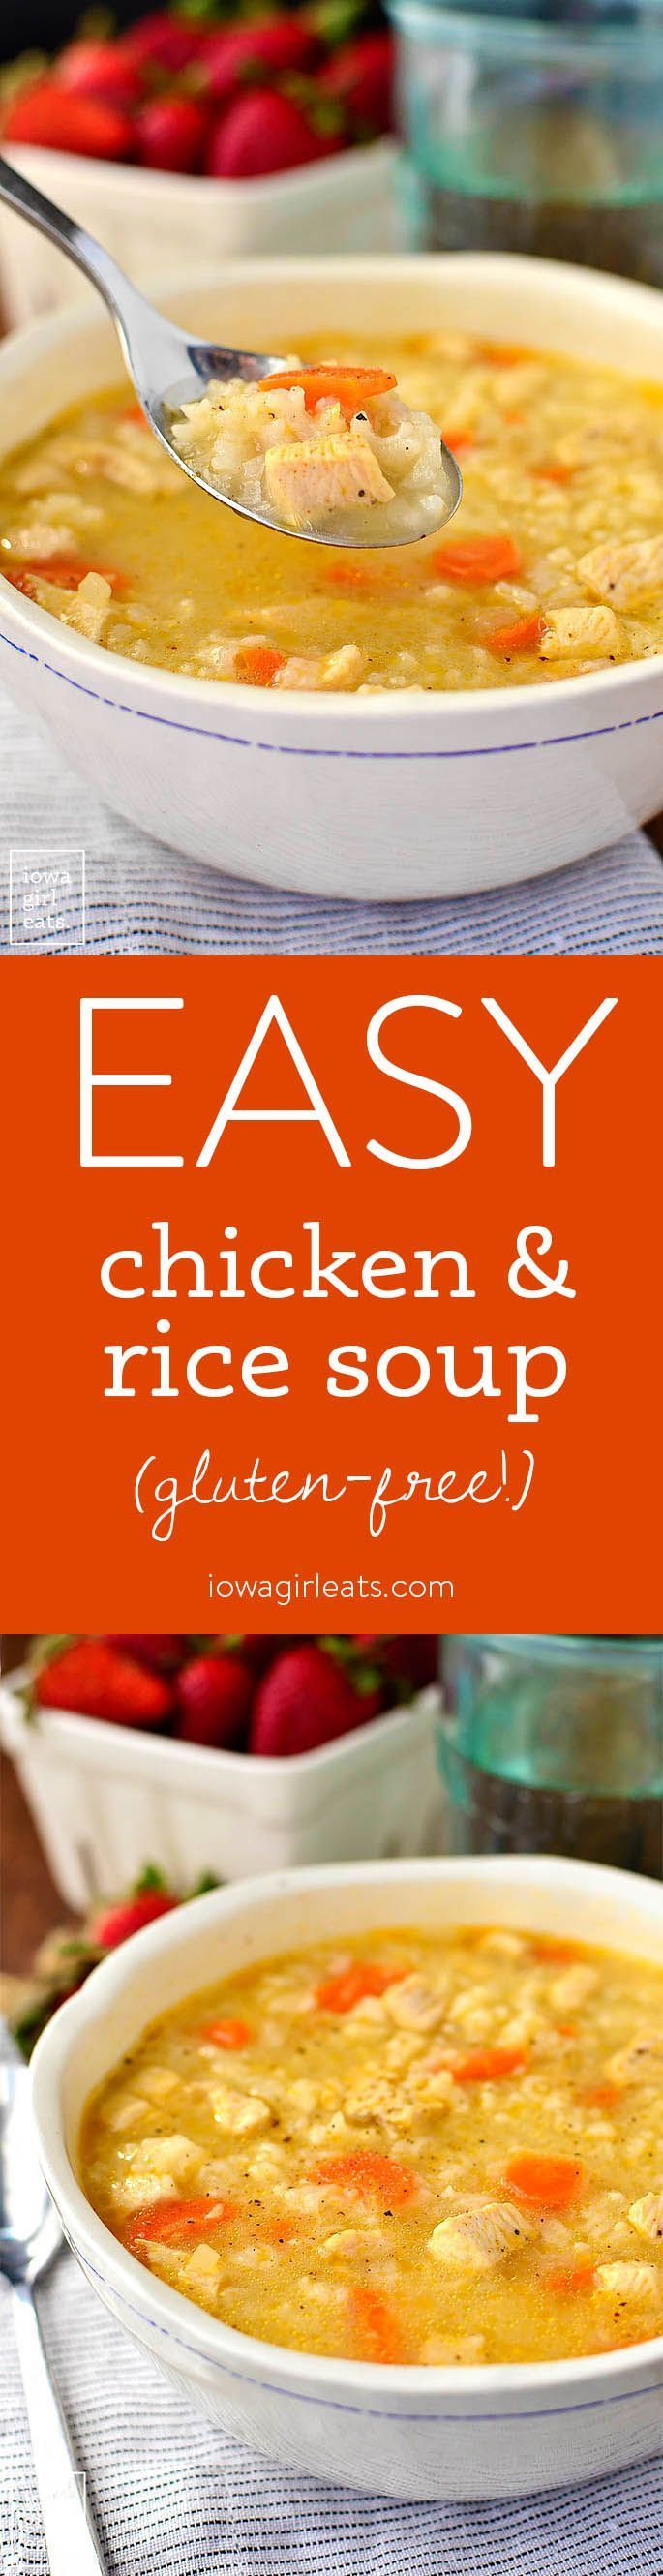 Easy Chicken and Rice Soup is a quick and easy gluten-free soup recipe that the entire family will love. Healthy comfort food in a bowl! | http://iowagirleats.com